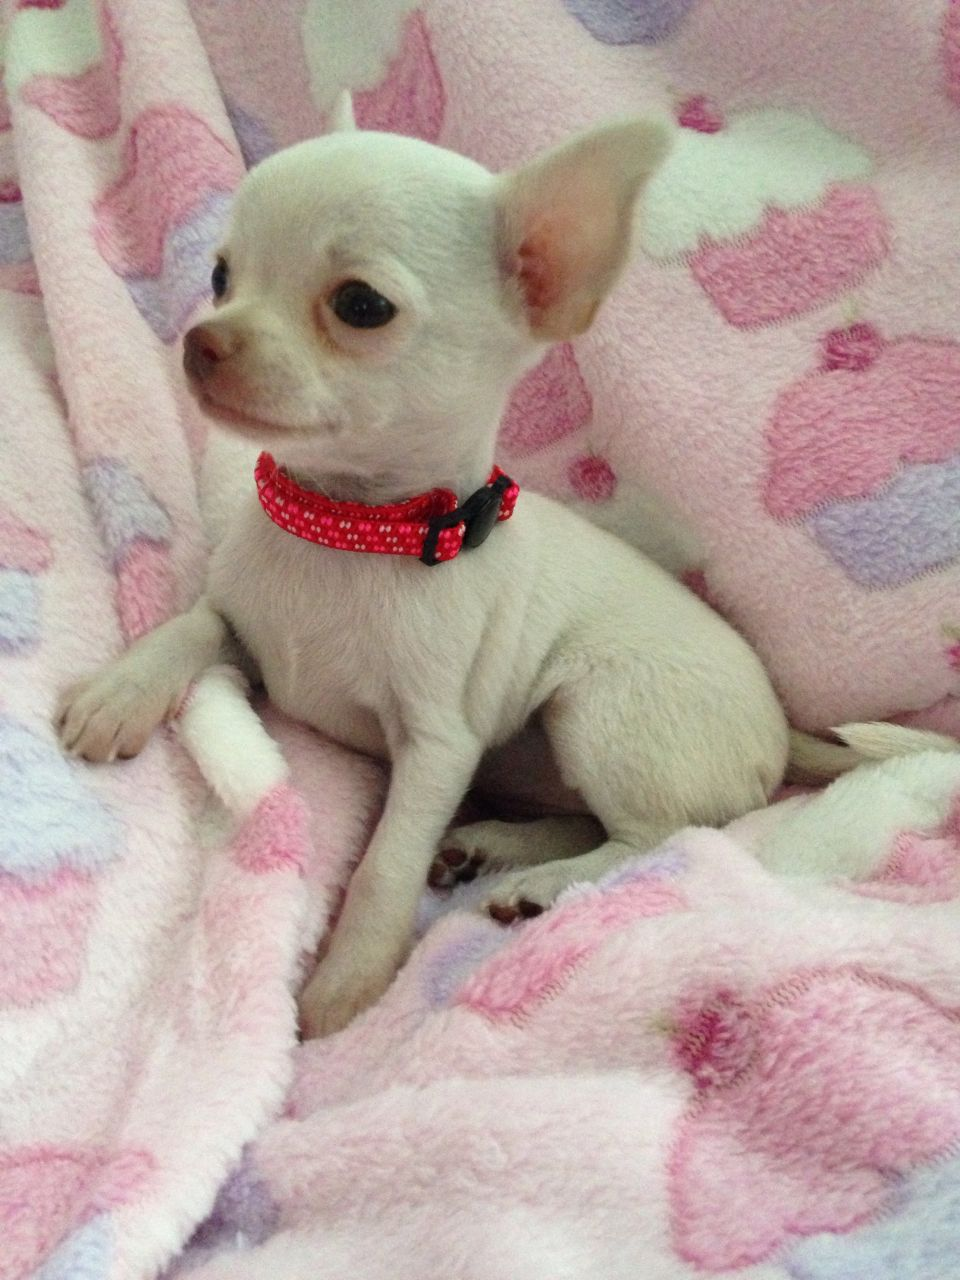 chihuahuaxxx-ready-now-xxx-2-chihuahua-puppies-527a2b7ebd3a5